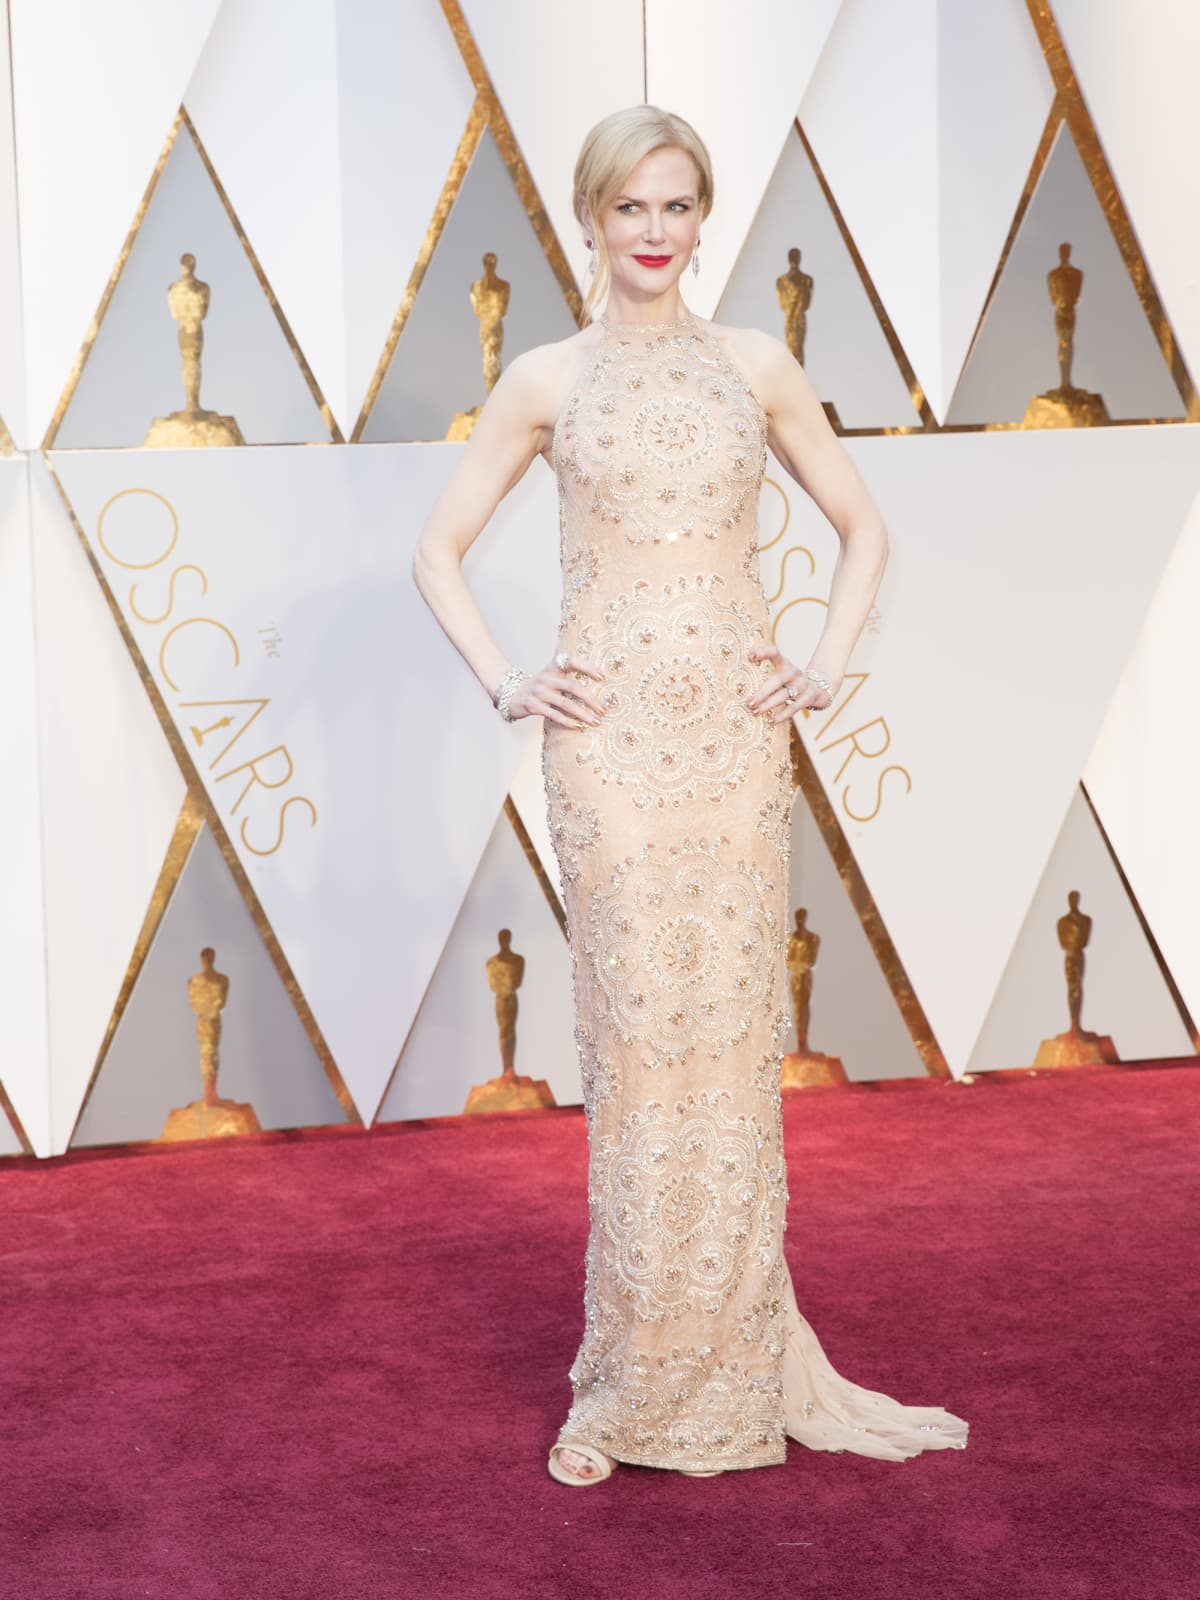 Nicole Kidman at Oscars 2017 in Armani Prive